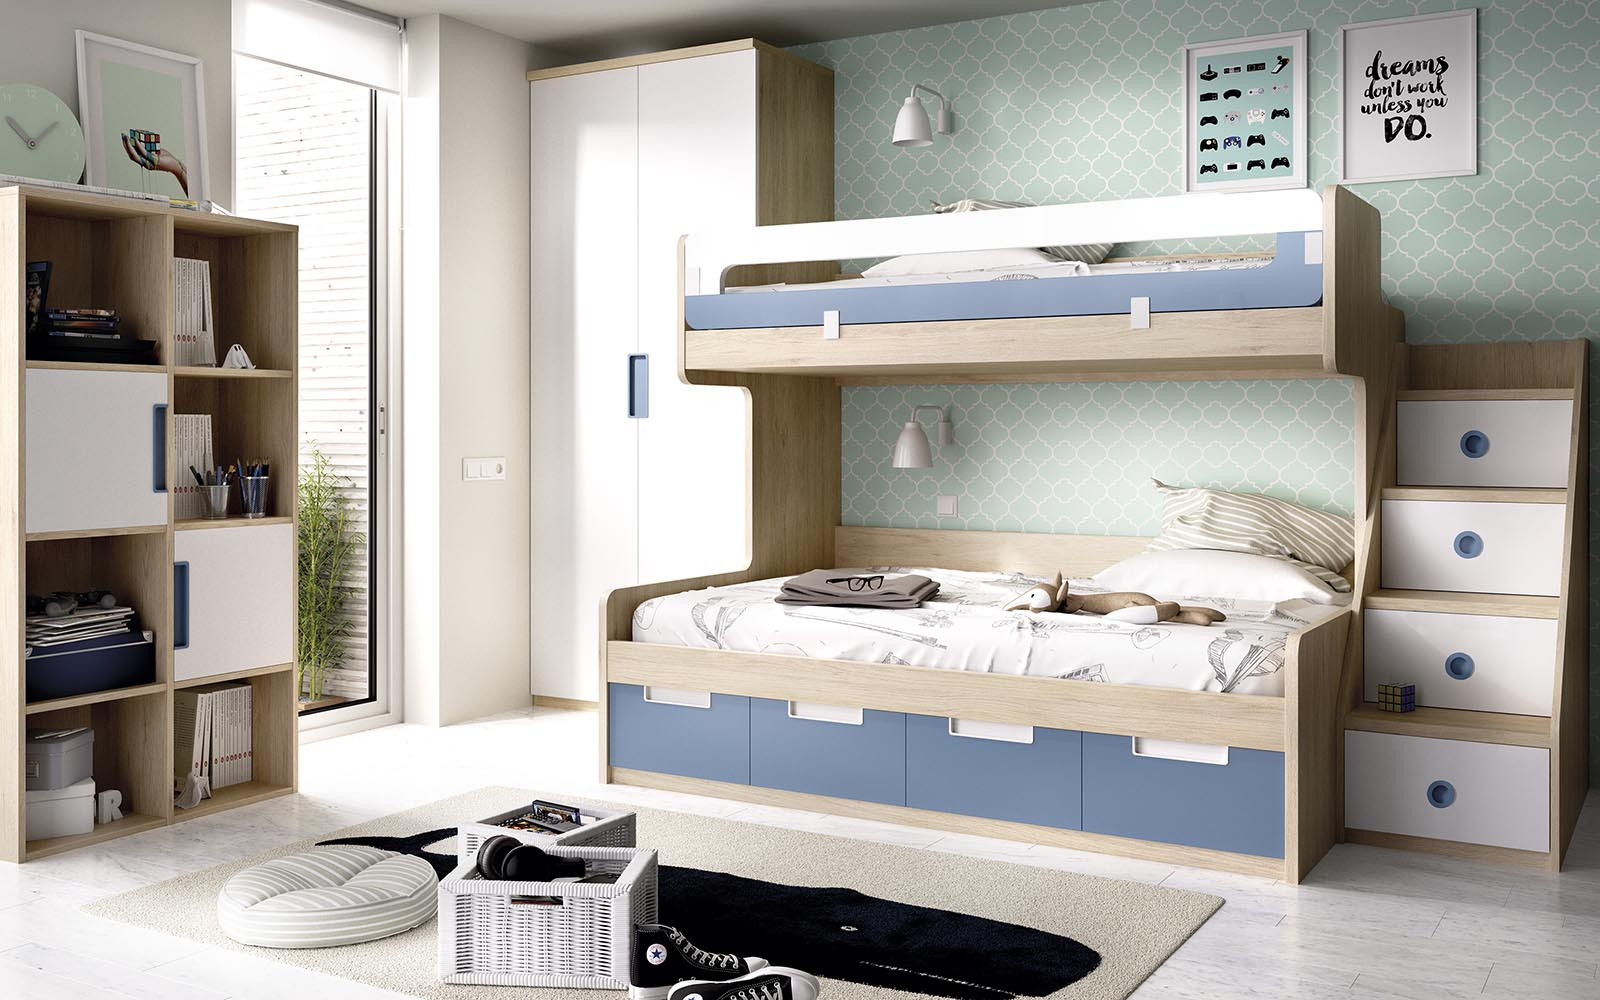 wooden bunk bed with blue and white details, cupboard bunk bed with extra space on the bottom of the space, krevati me xoro apo kato apo to krevati, stairs on the right of the bed,